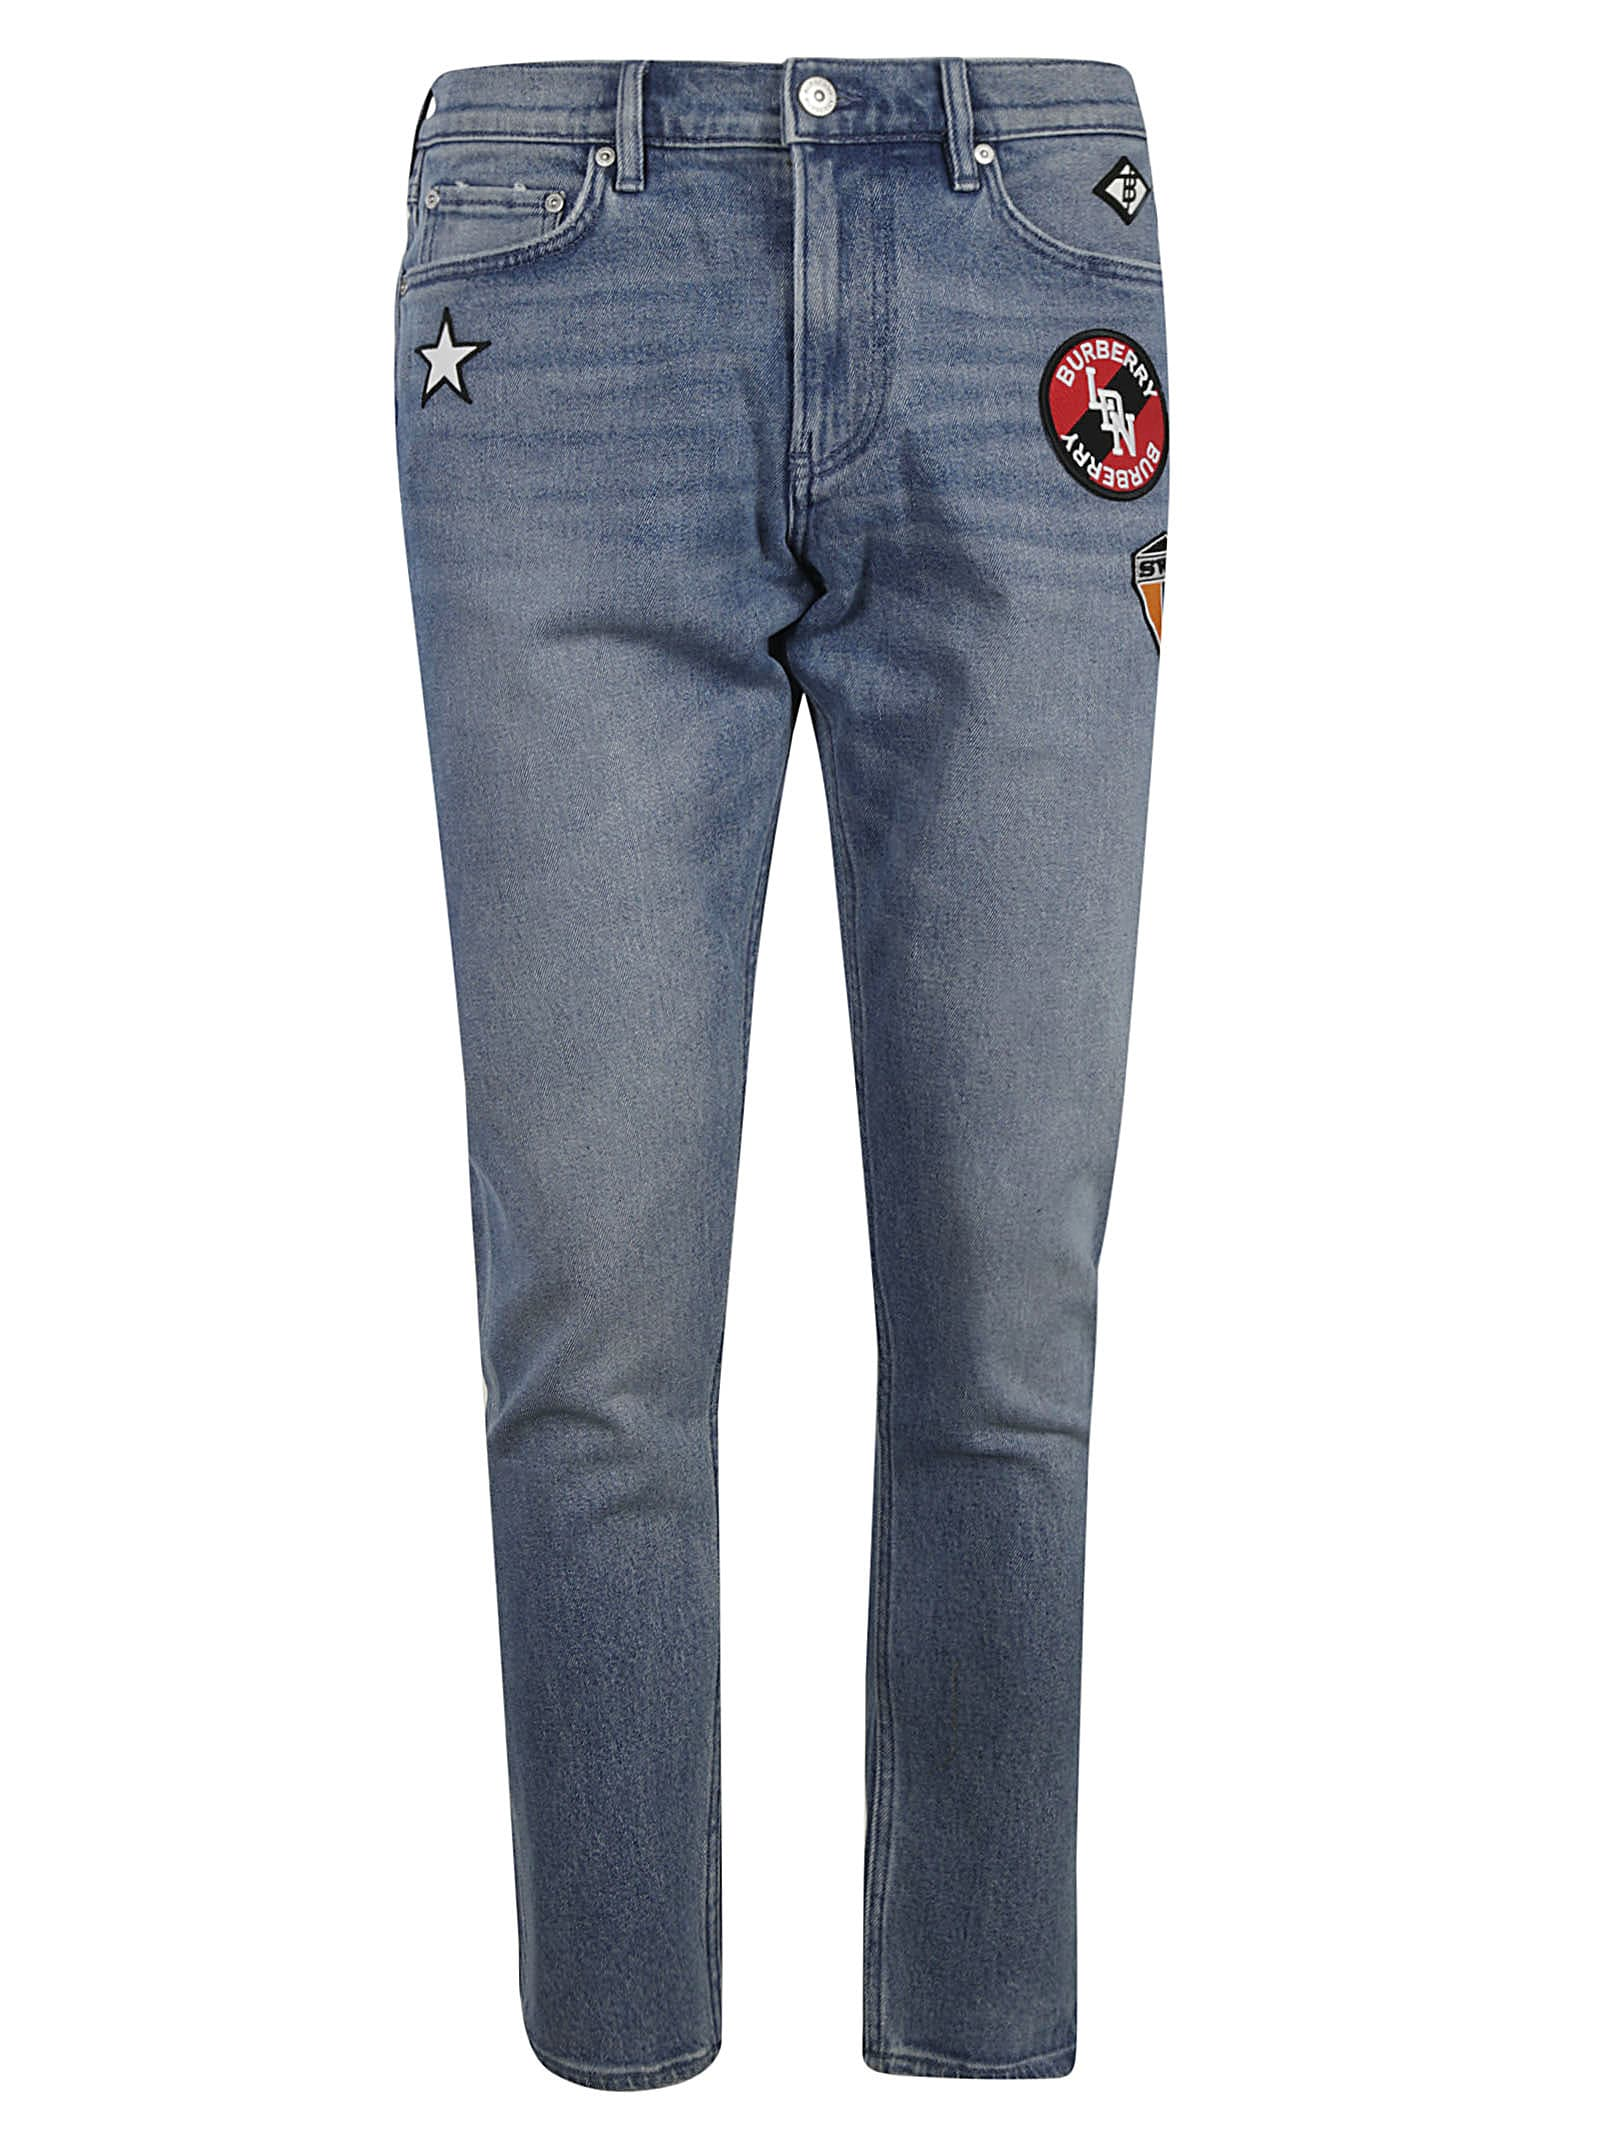 Burberry Patched Jeans